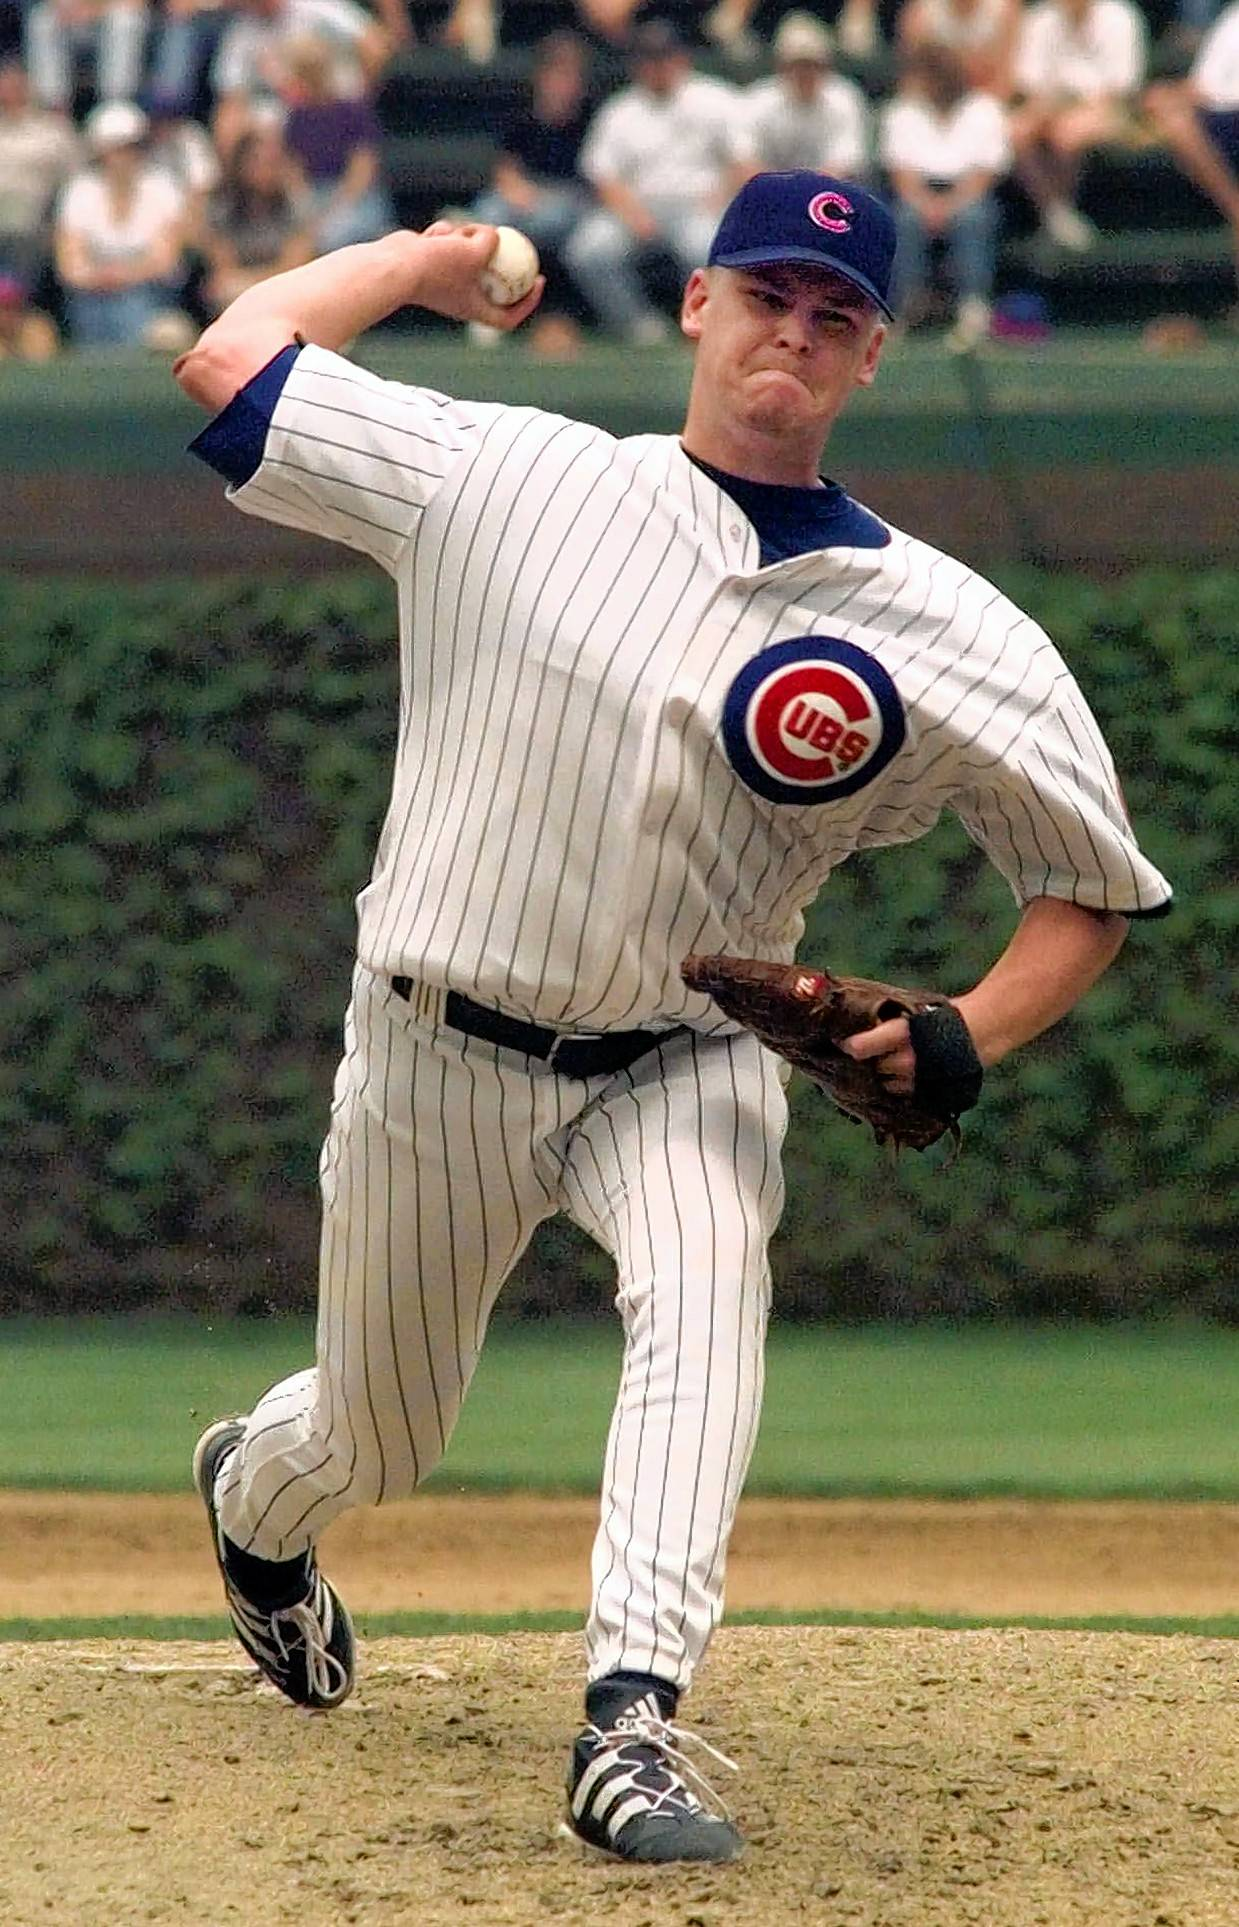 20 years since 20 Ks: Reliving Cubs phenom Kerry Wood's memorable day